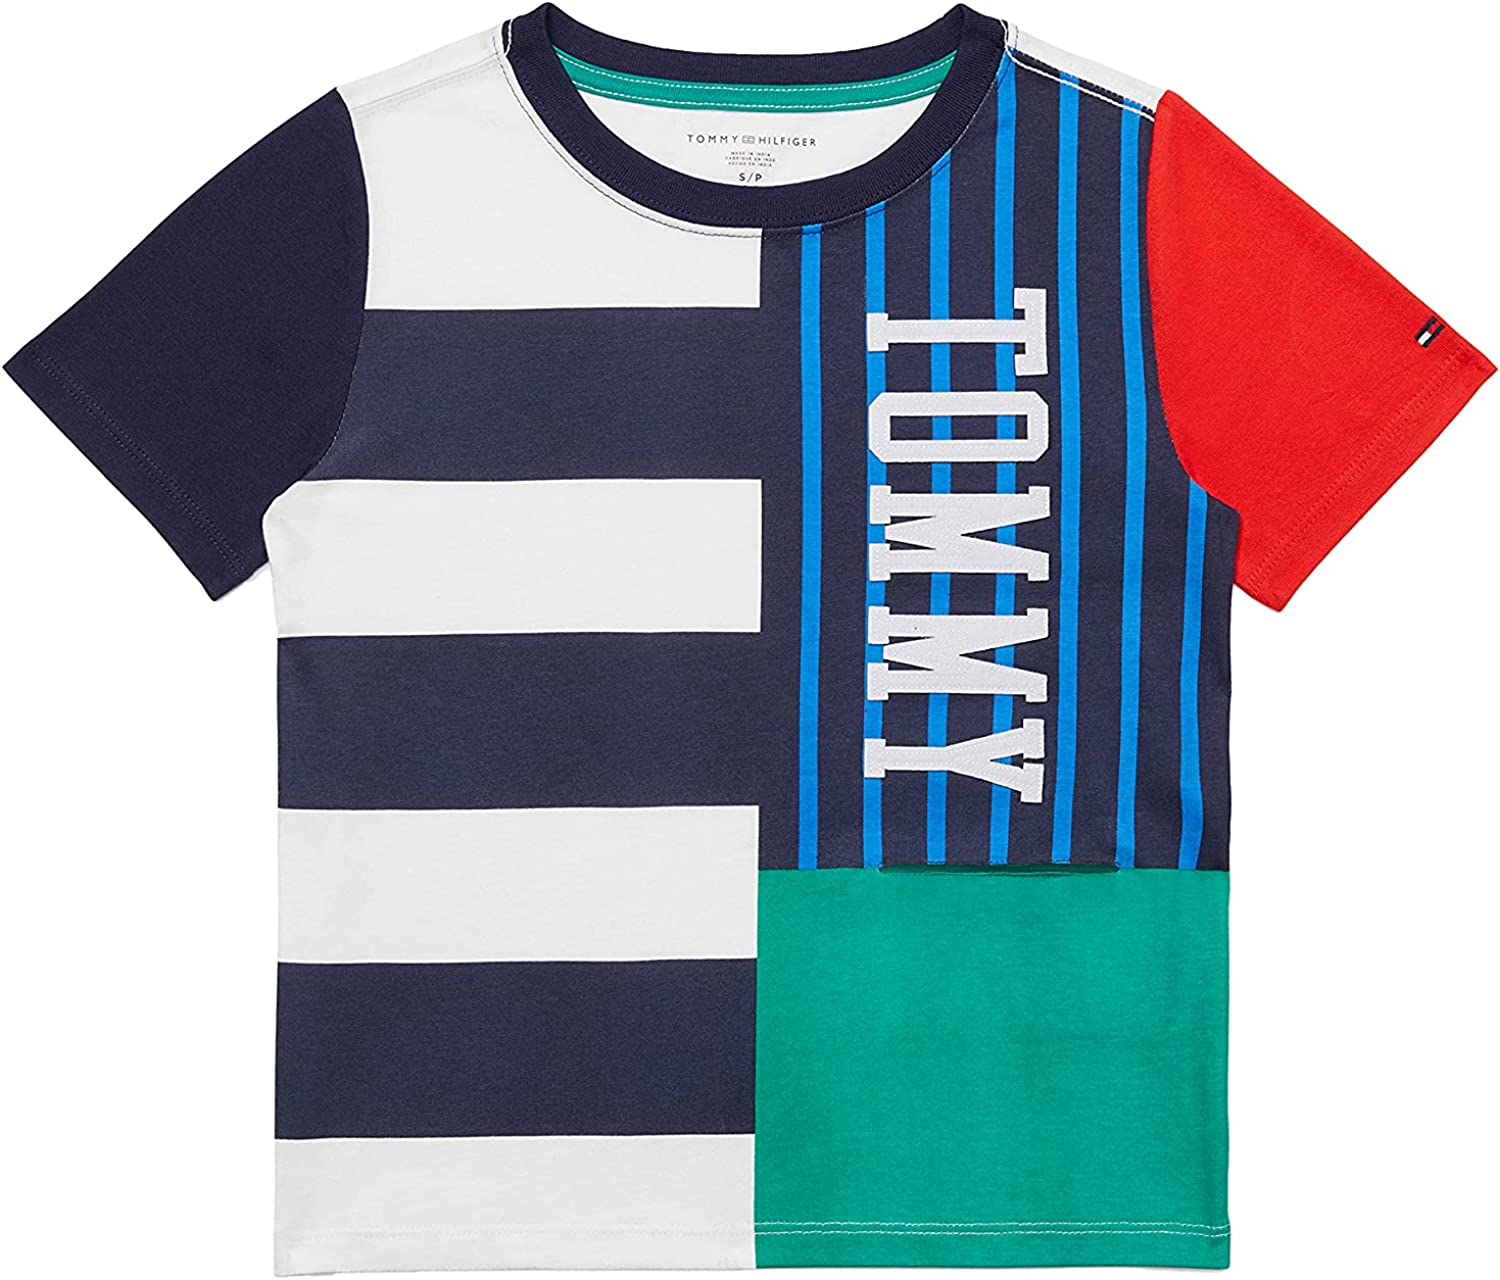 Tommy Hilfiger Adaptive Tommy Hilfiger Boys' Adaptive T Shirt with Port Access